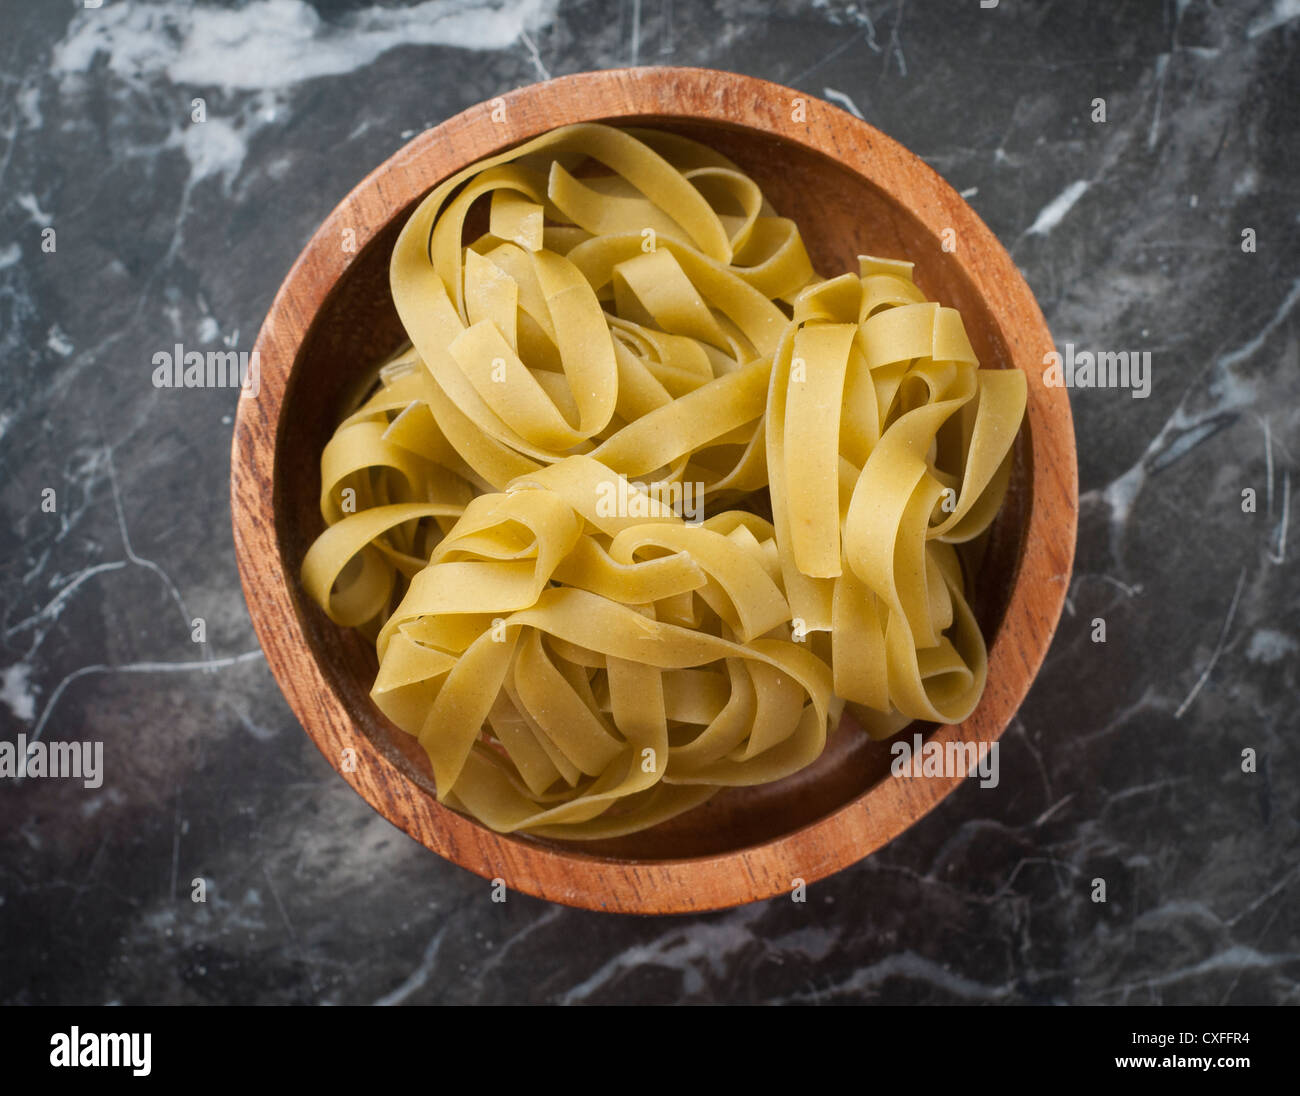 shows a type of dried pasta - Stock Image